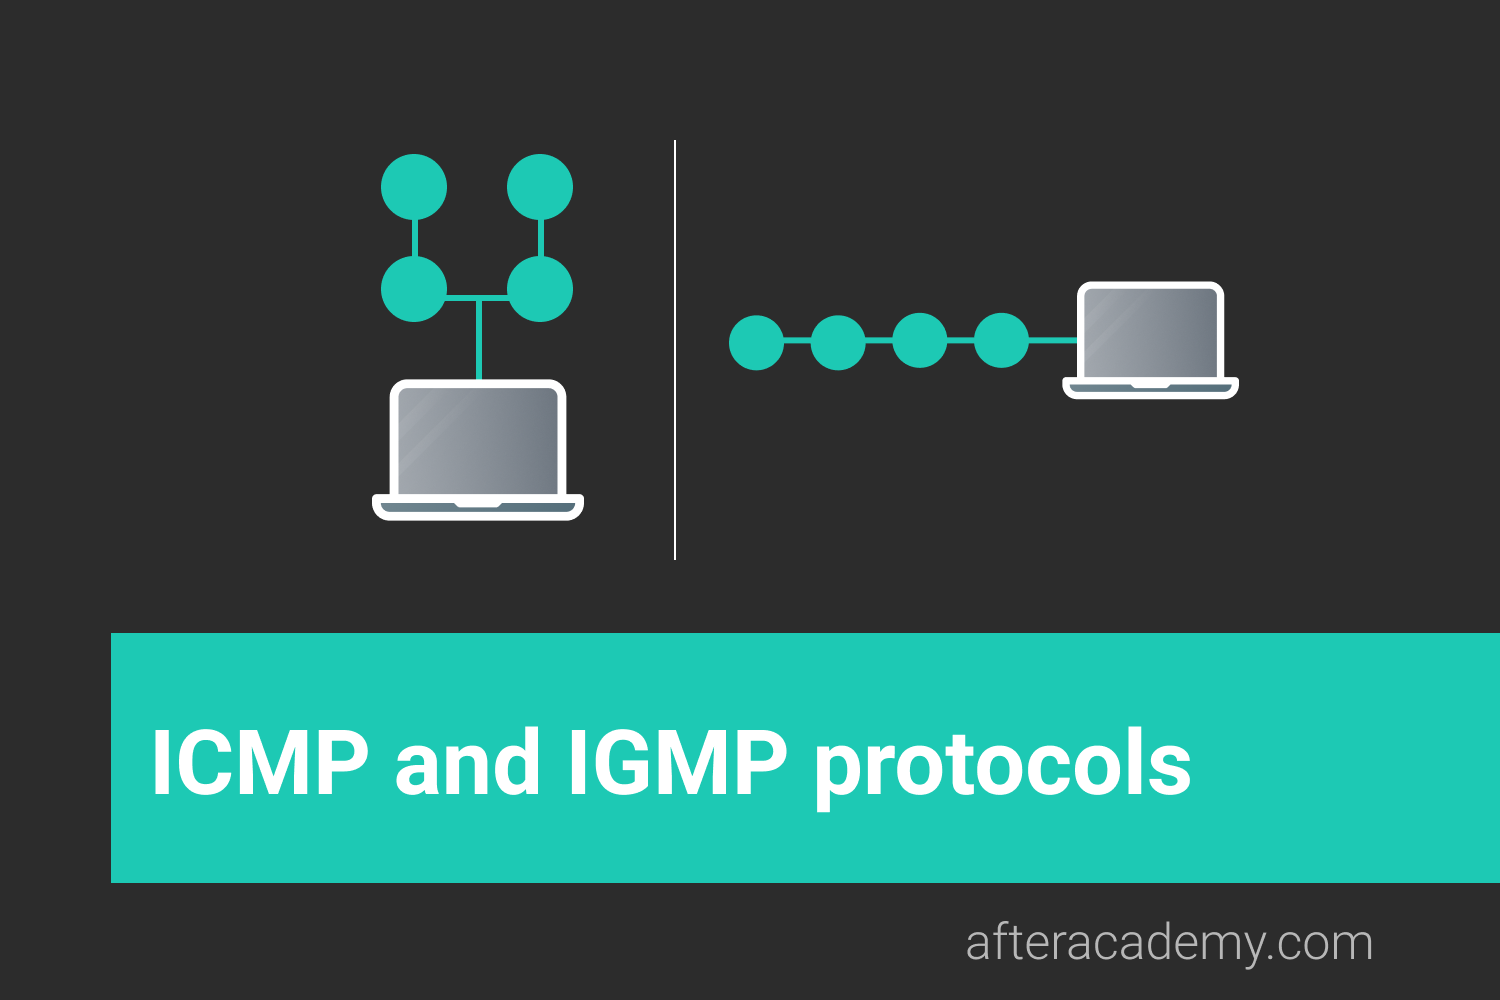 What are ICMP and IGMP protocols?